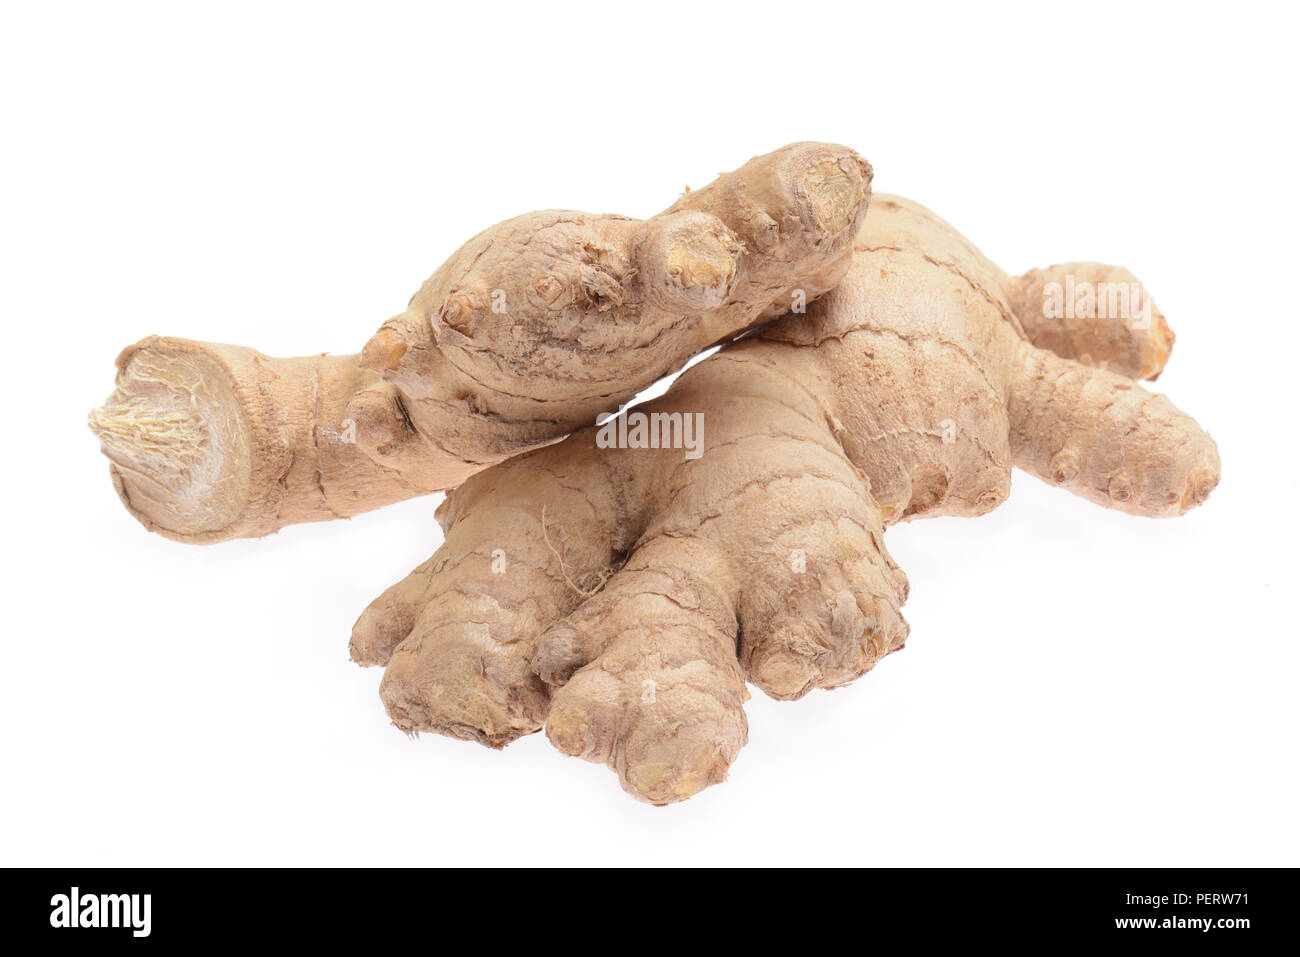 Ginger roots isolated on a white background. - Stock Image